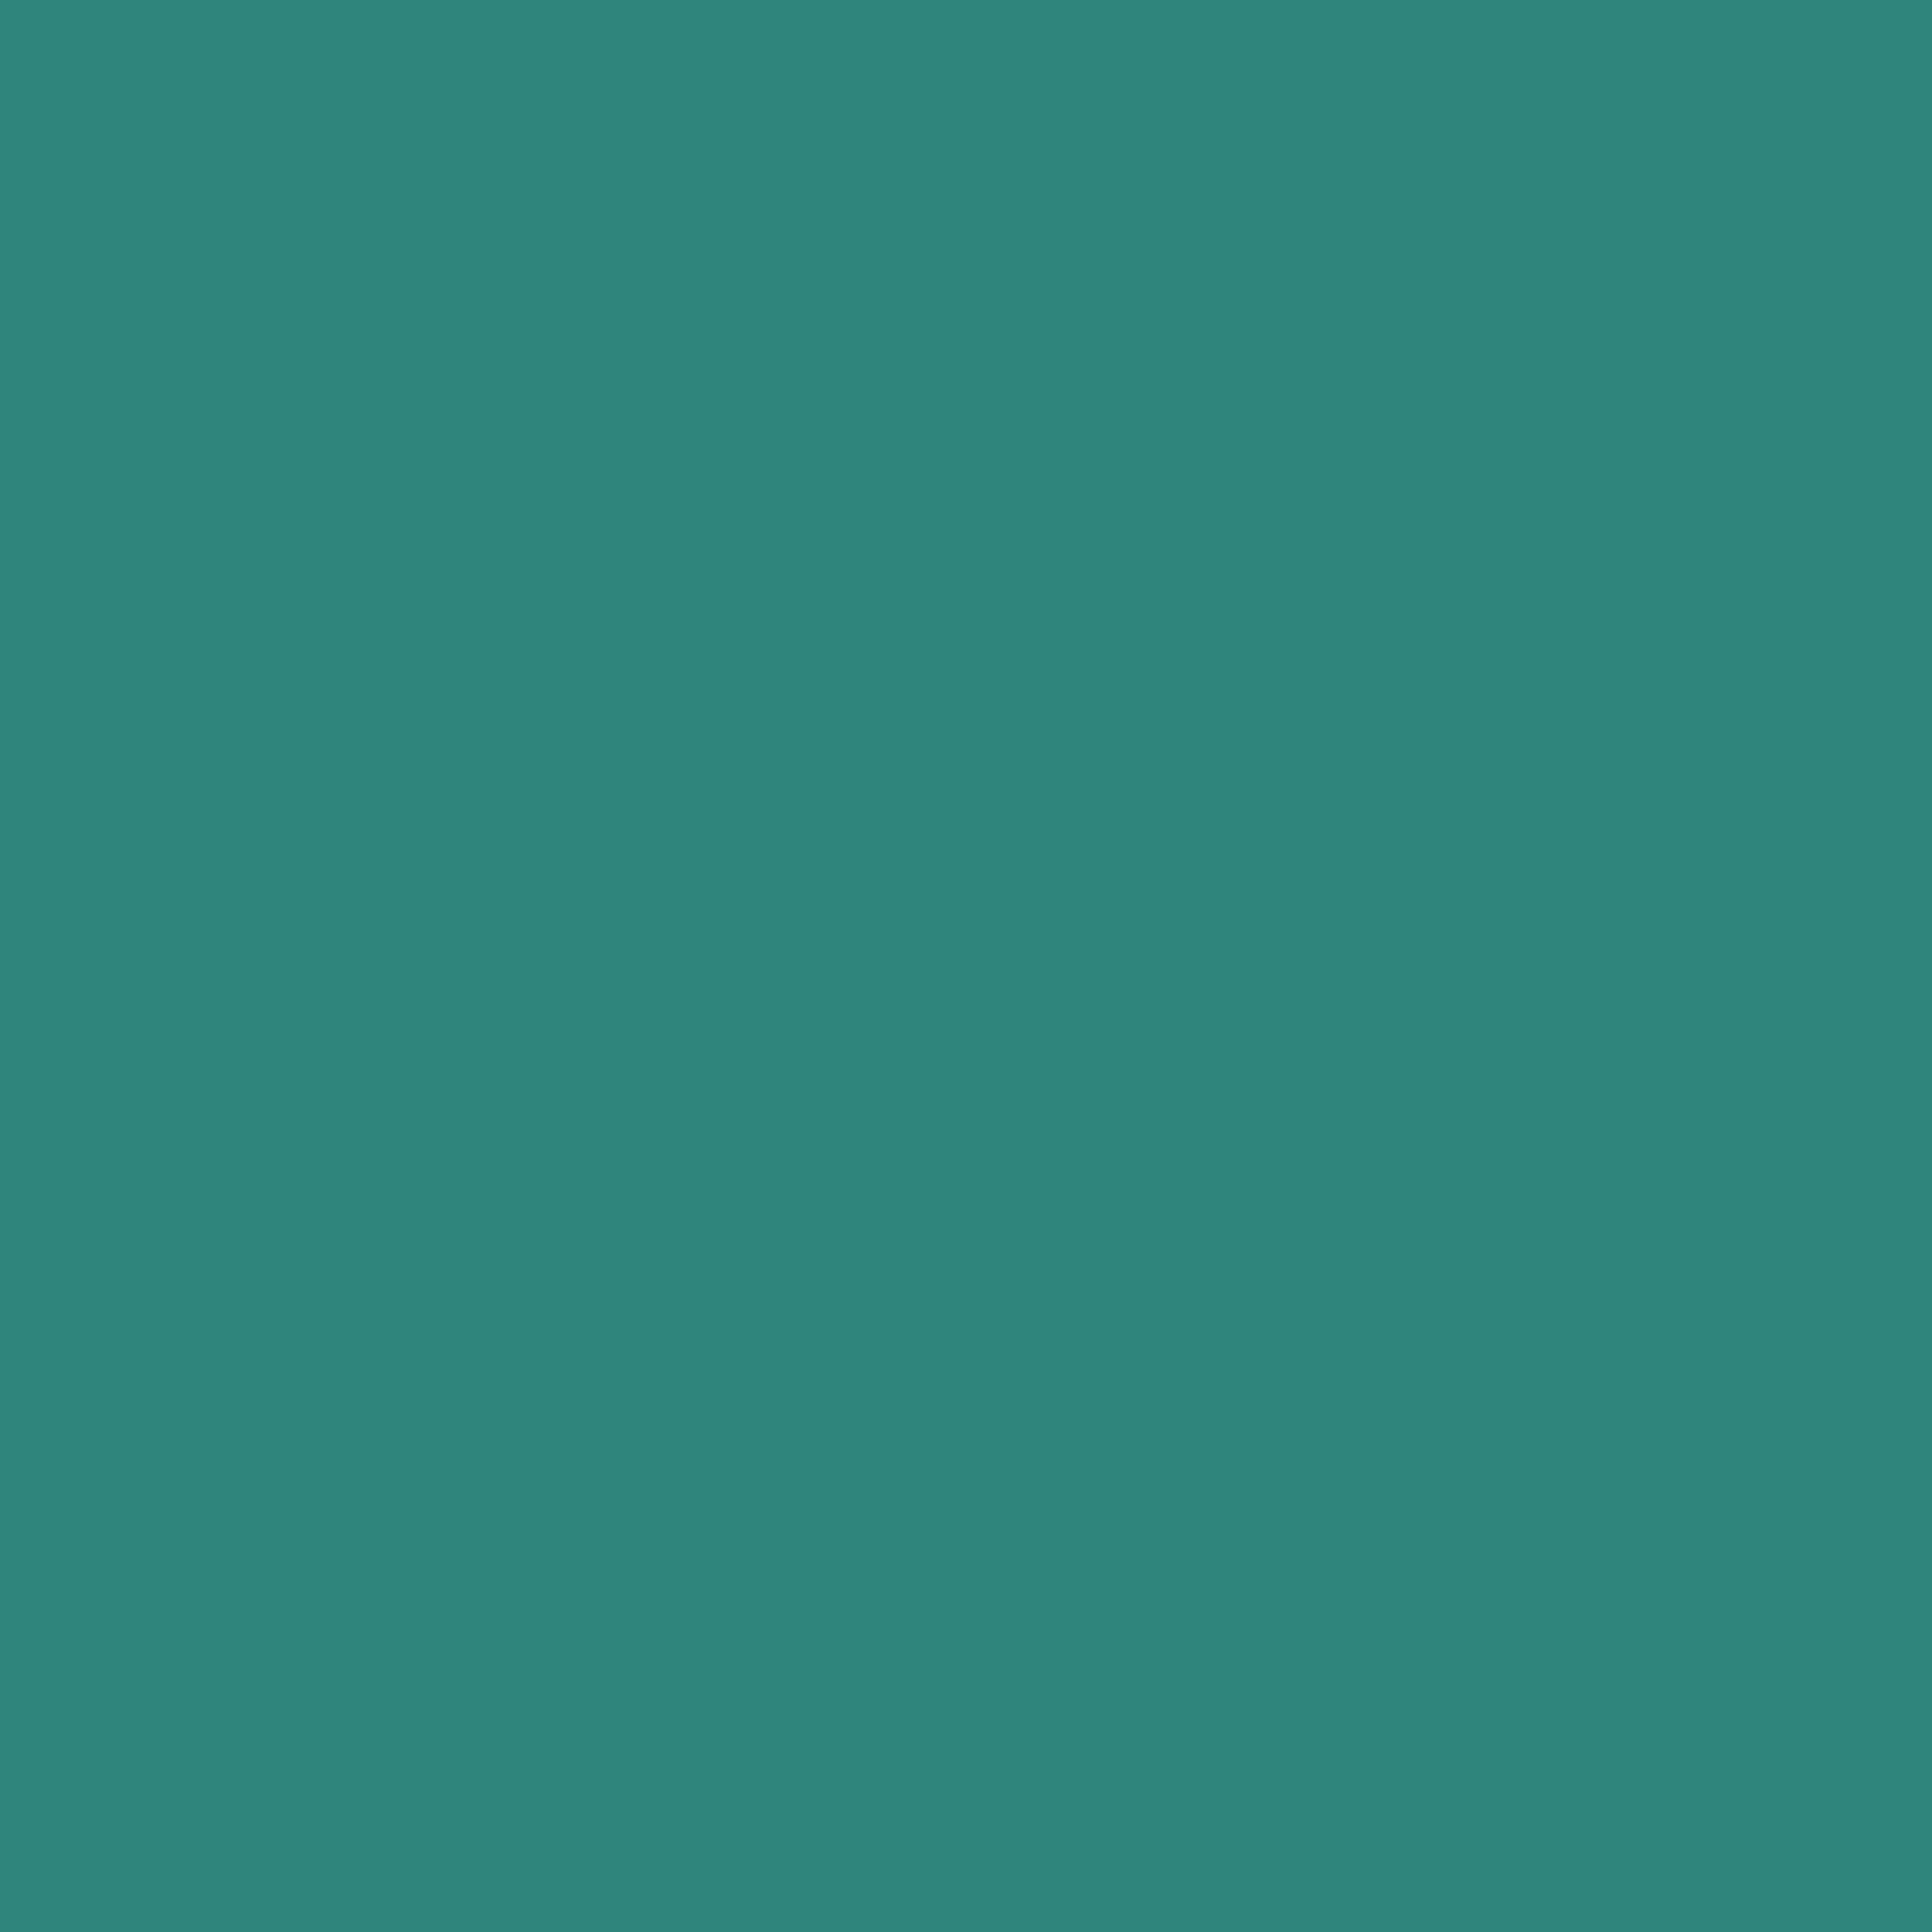 3600x3600 Celadon Green Solid Color Background